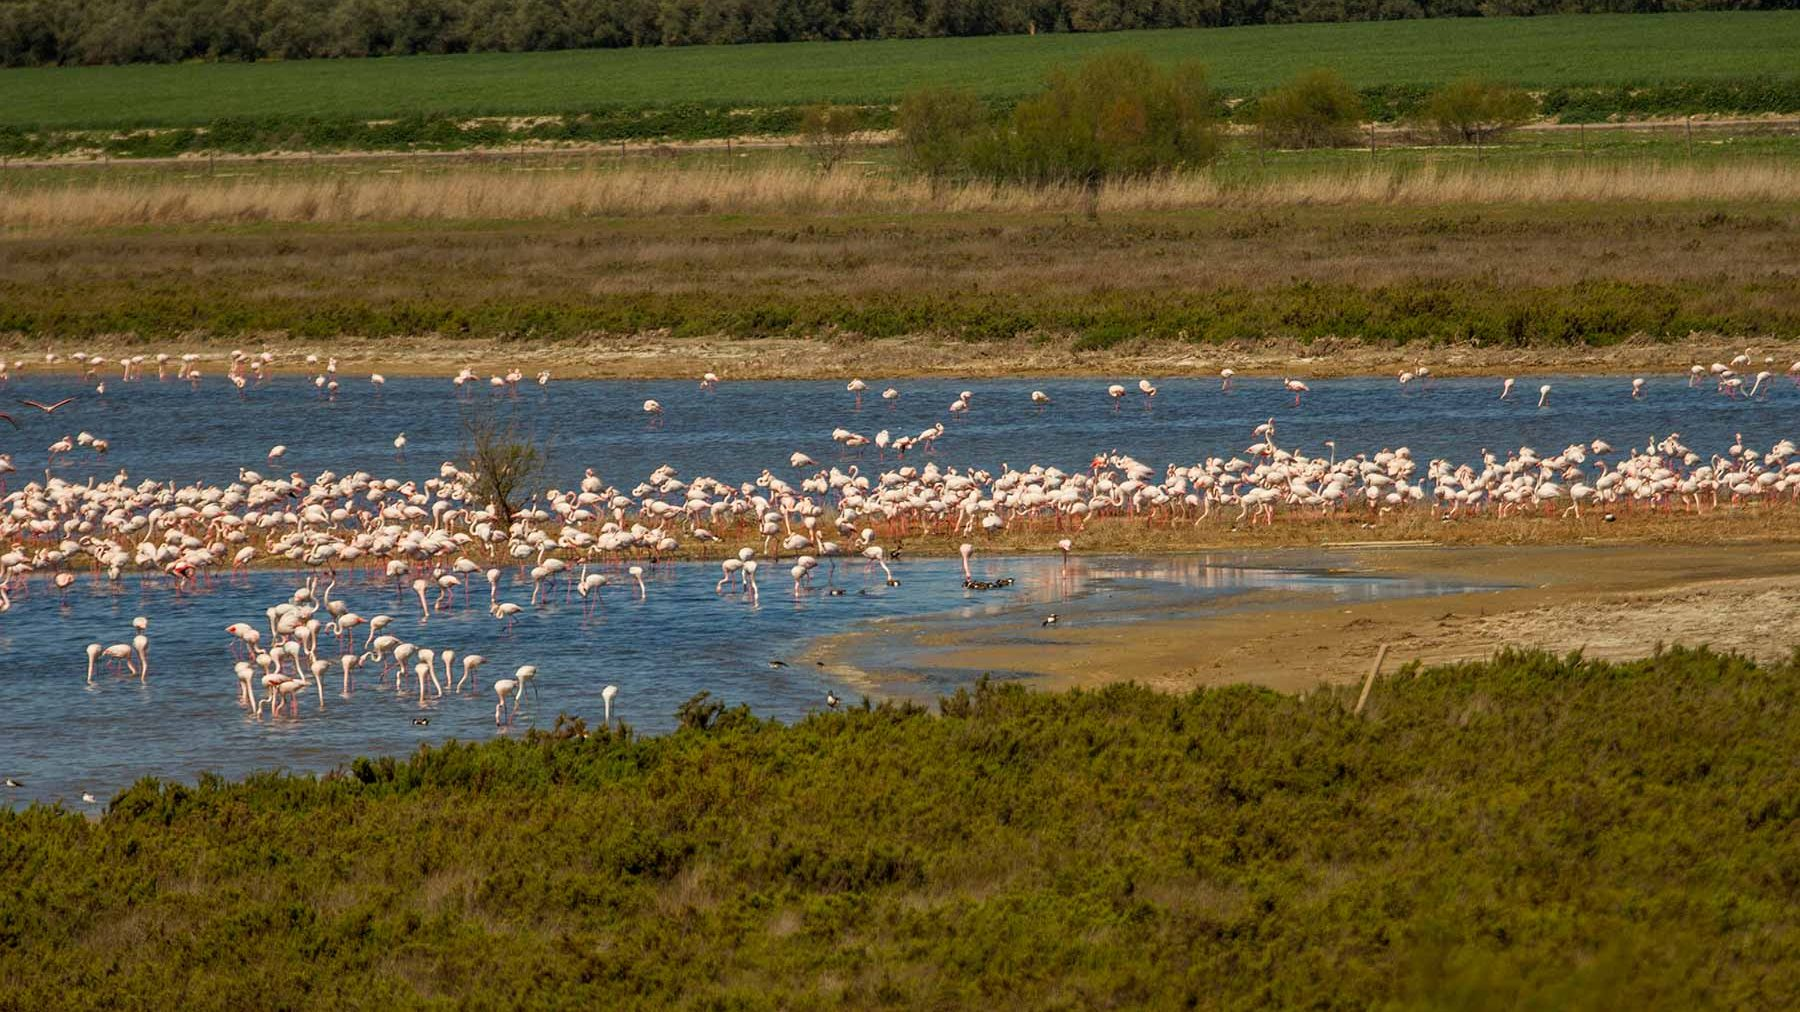 Greater flamingo at fuente de piedra drought and abuse of - Fuentes de piedra ...